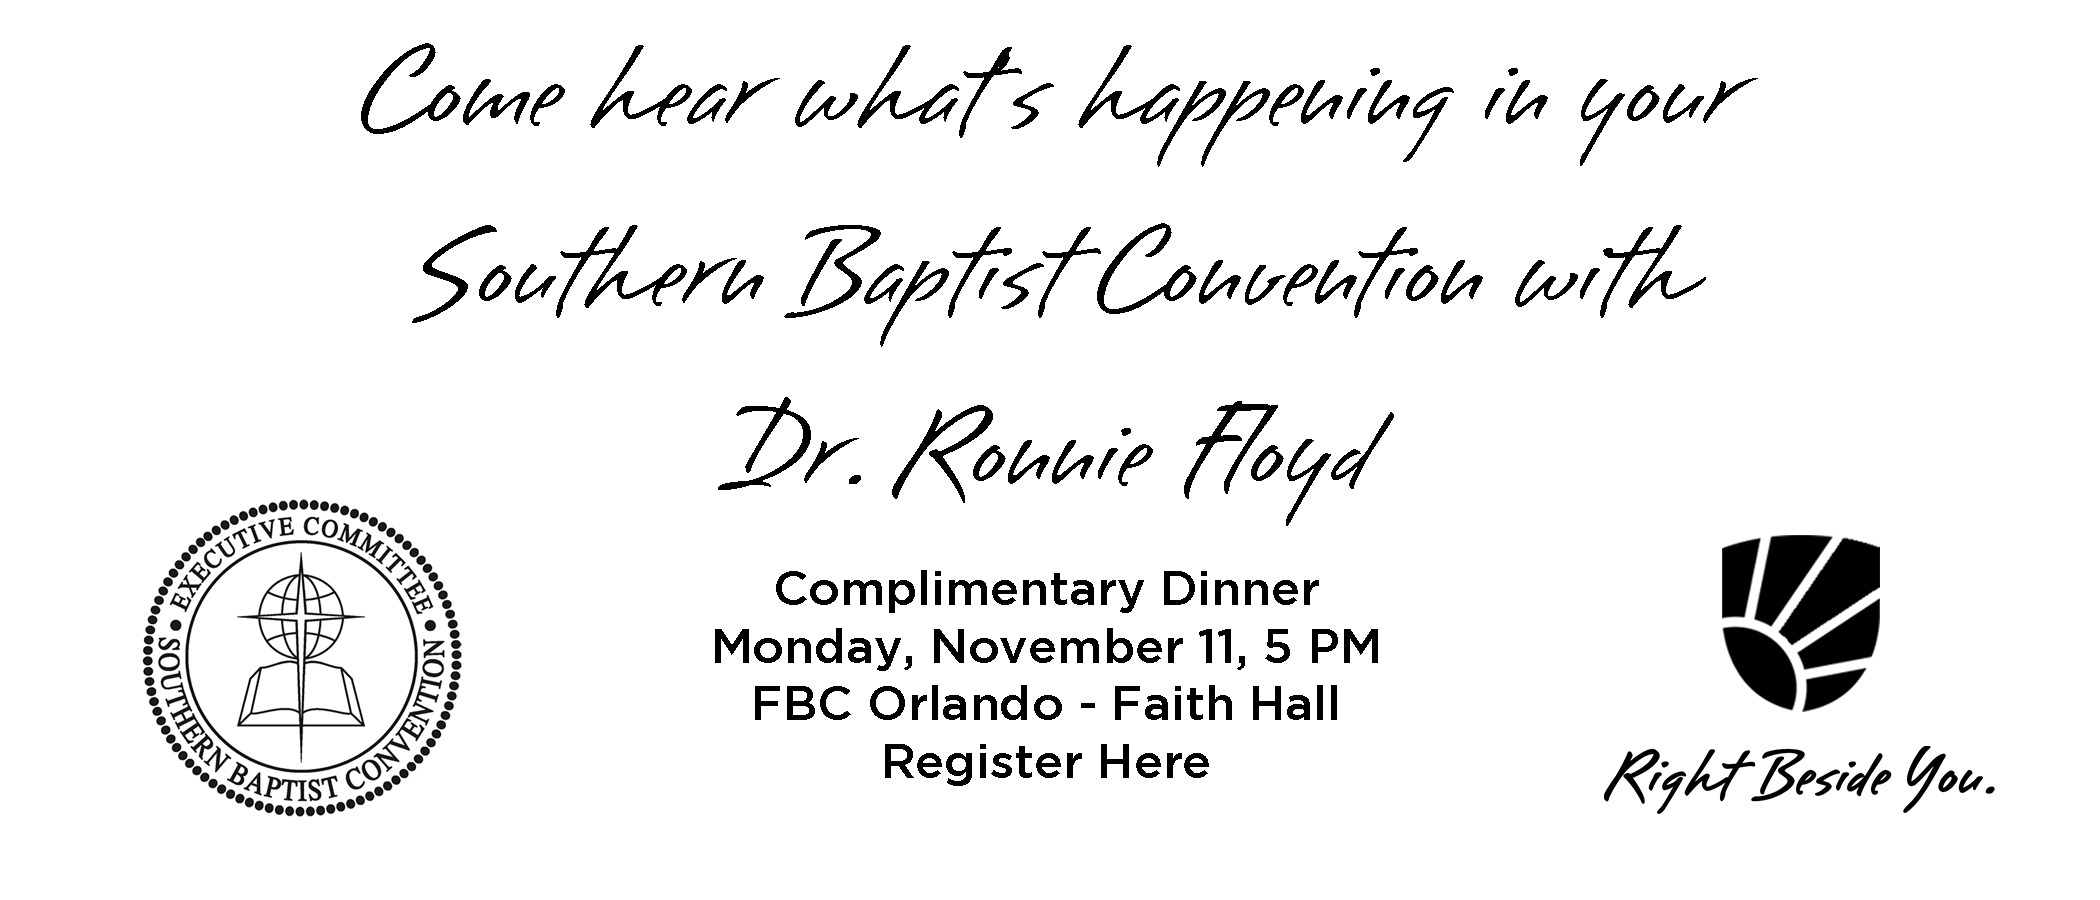 Florida Baptist Convention, Florida Baptist State Convention, Meal Ticket, Ronnie Floyd